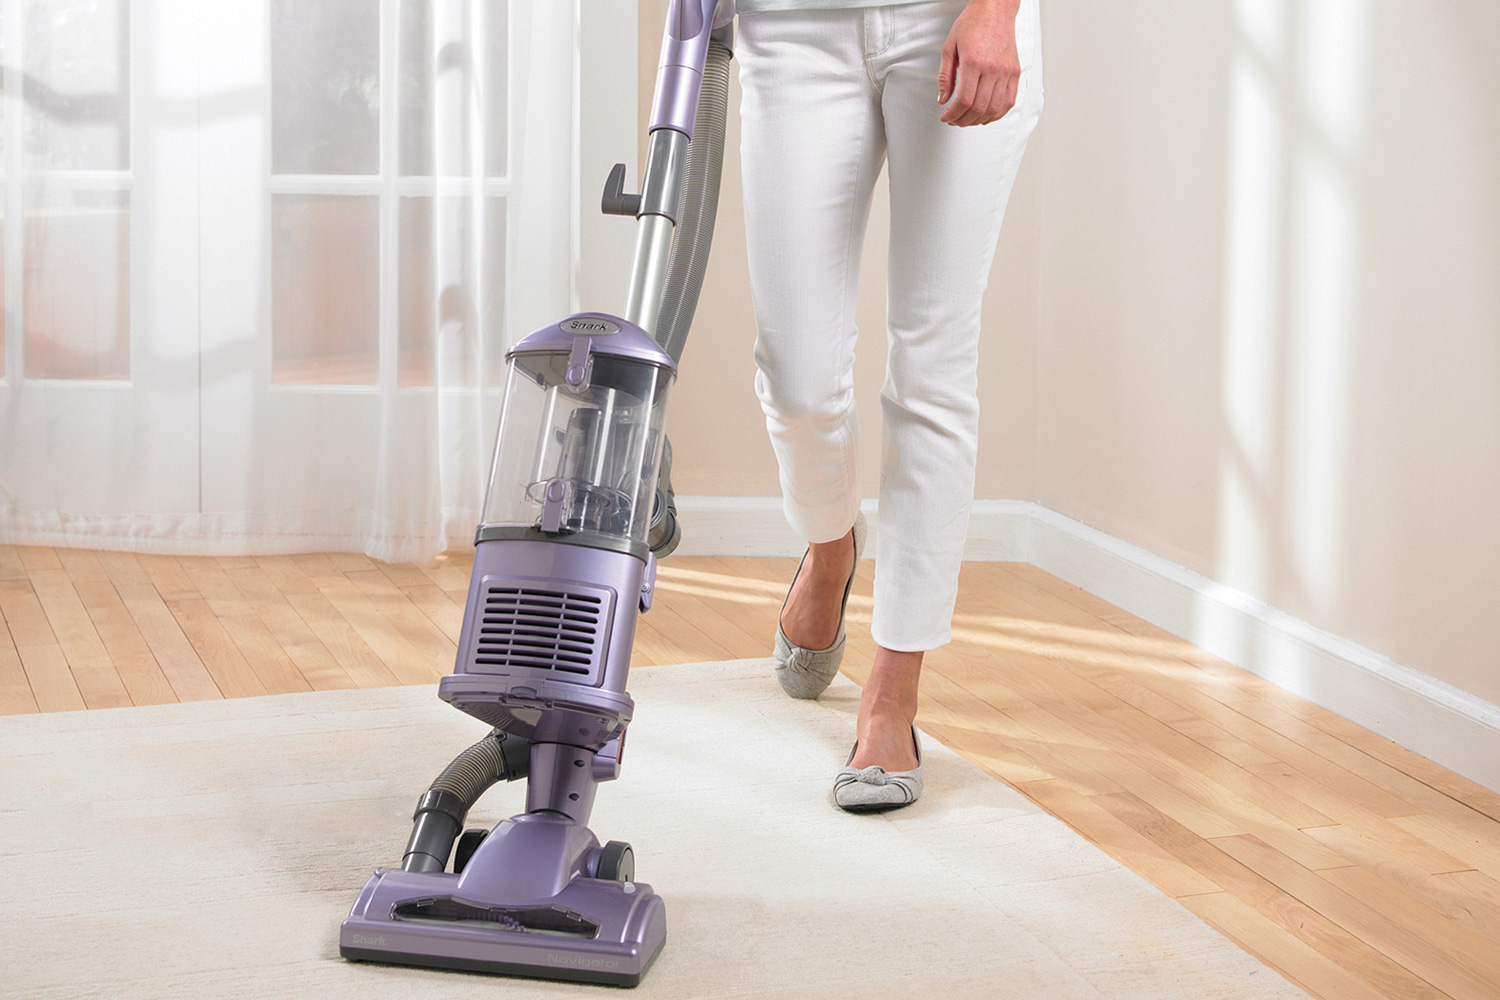 best vacuums shark navigator liftawaypro - Best Vacuum For Home